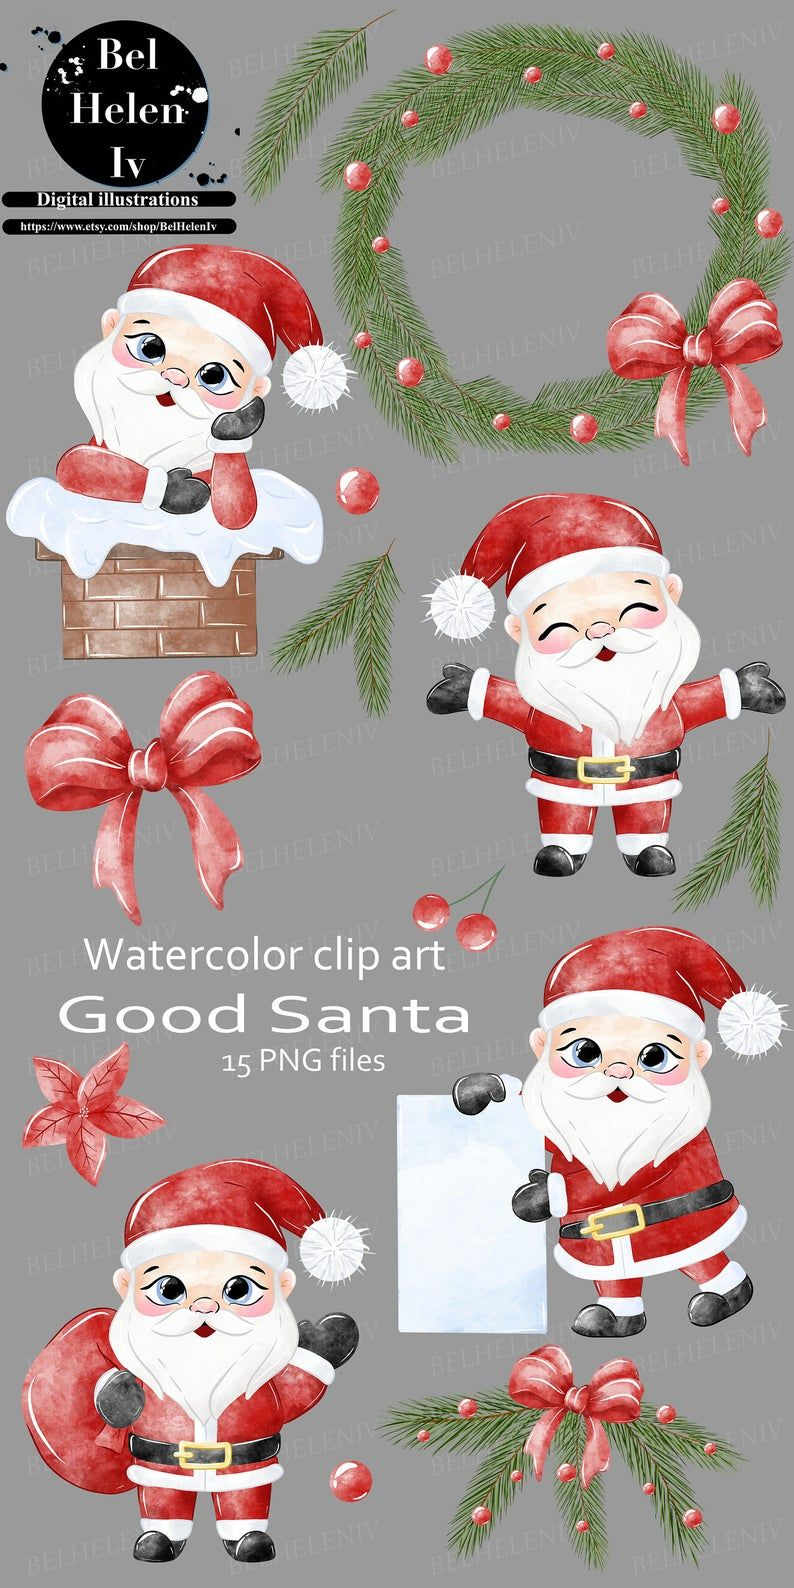 Winter Woodland Watercolor Clipart Christmas Holidays Digital | Etsy in  2020 | Clip art, Christmas clipart, Watercolor clipart